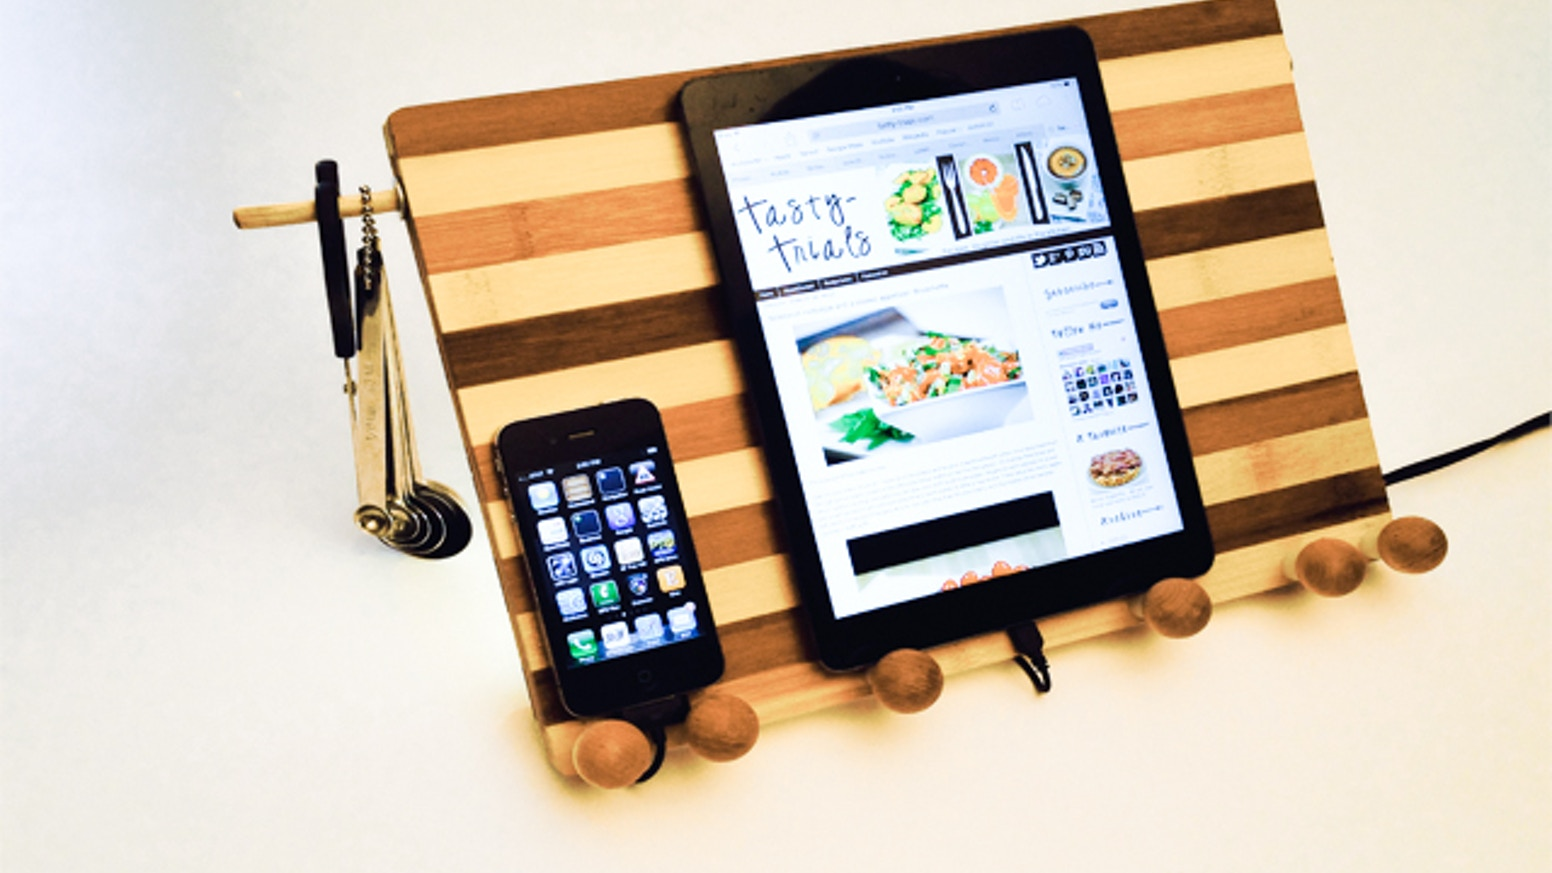 Cool tablet and cookbook stand made out of eco-friendly bamboo designed  perfectly for charging devices while in use in your kitchen.